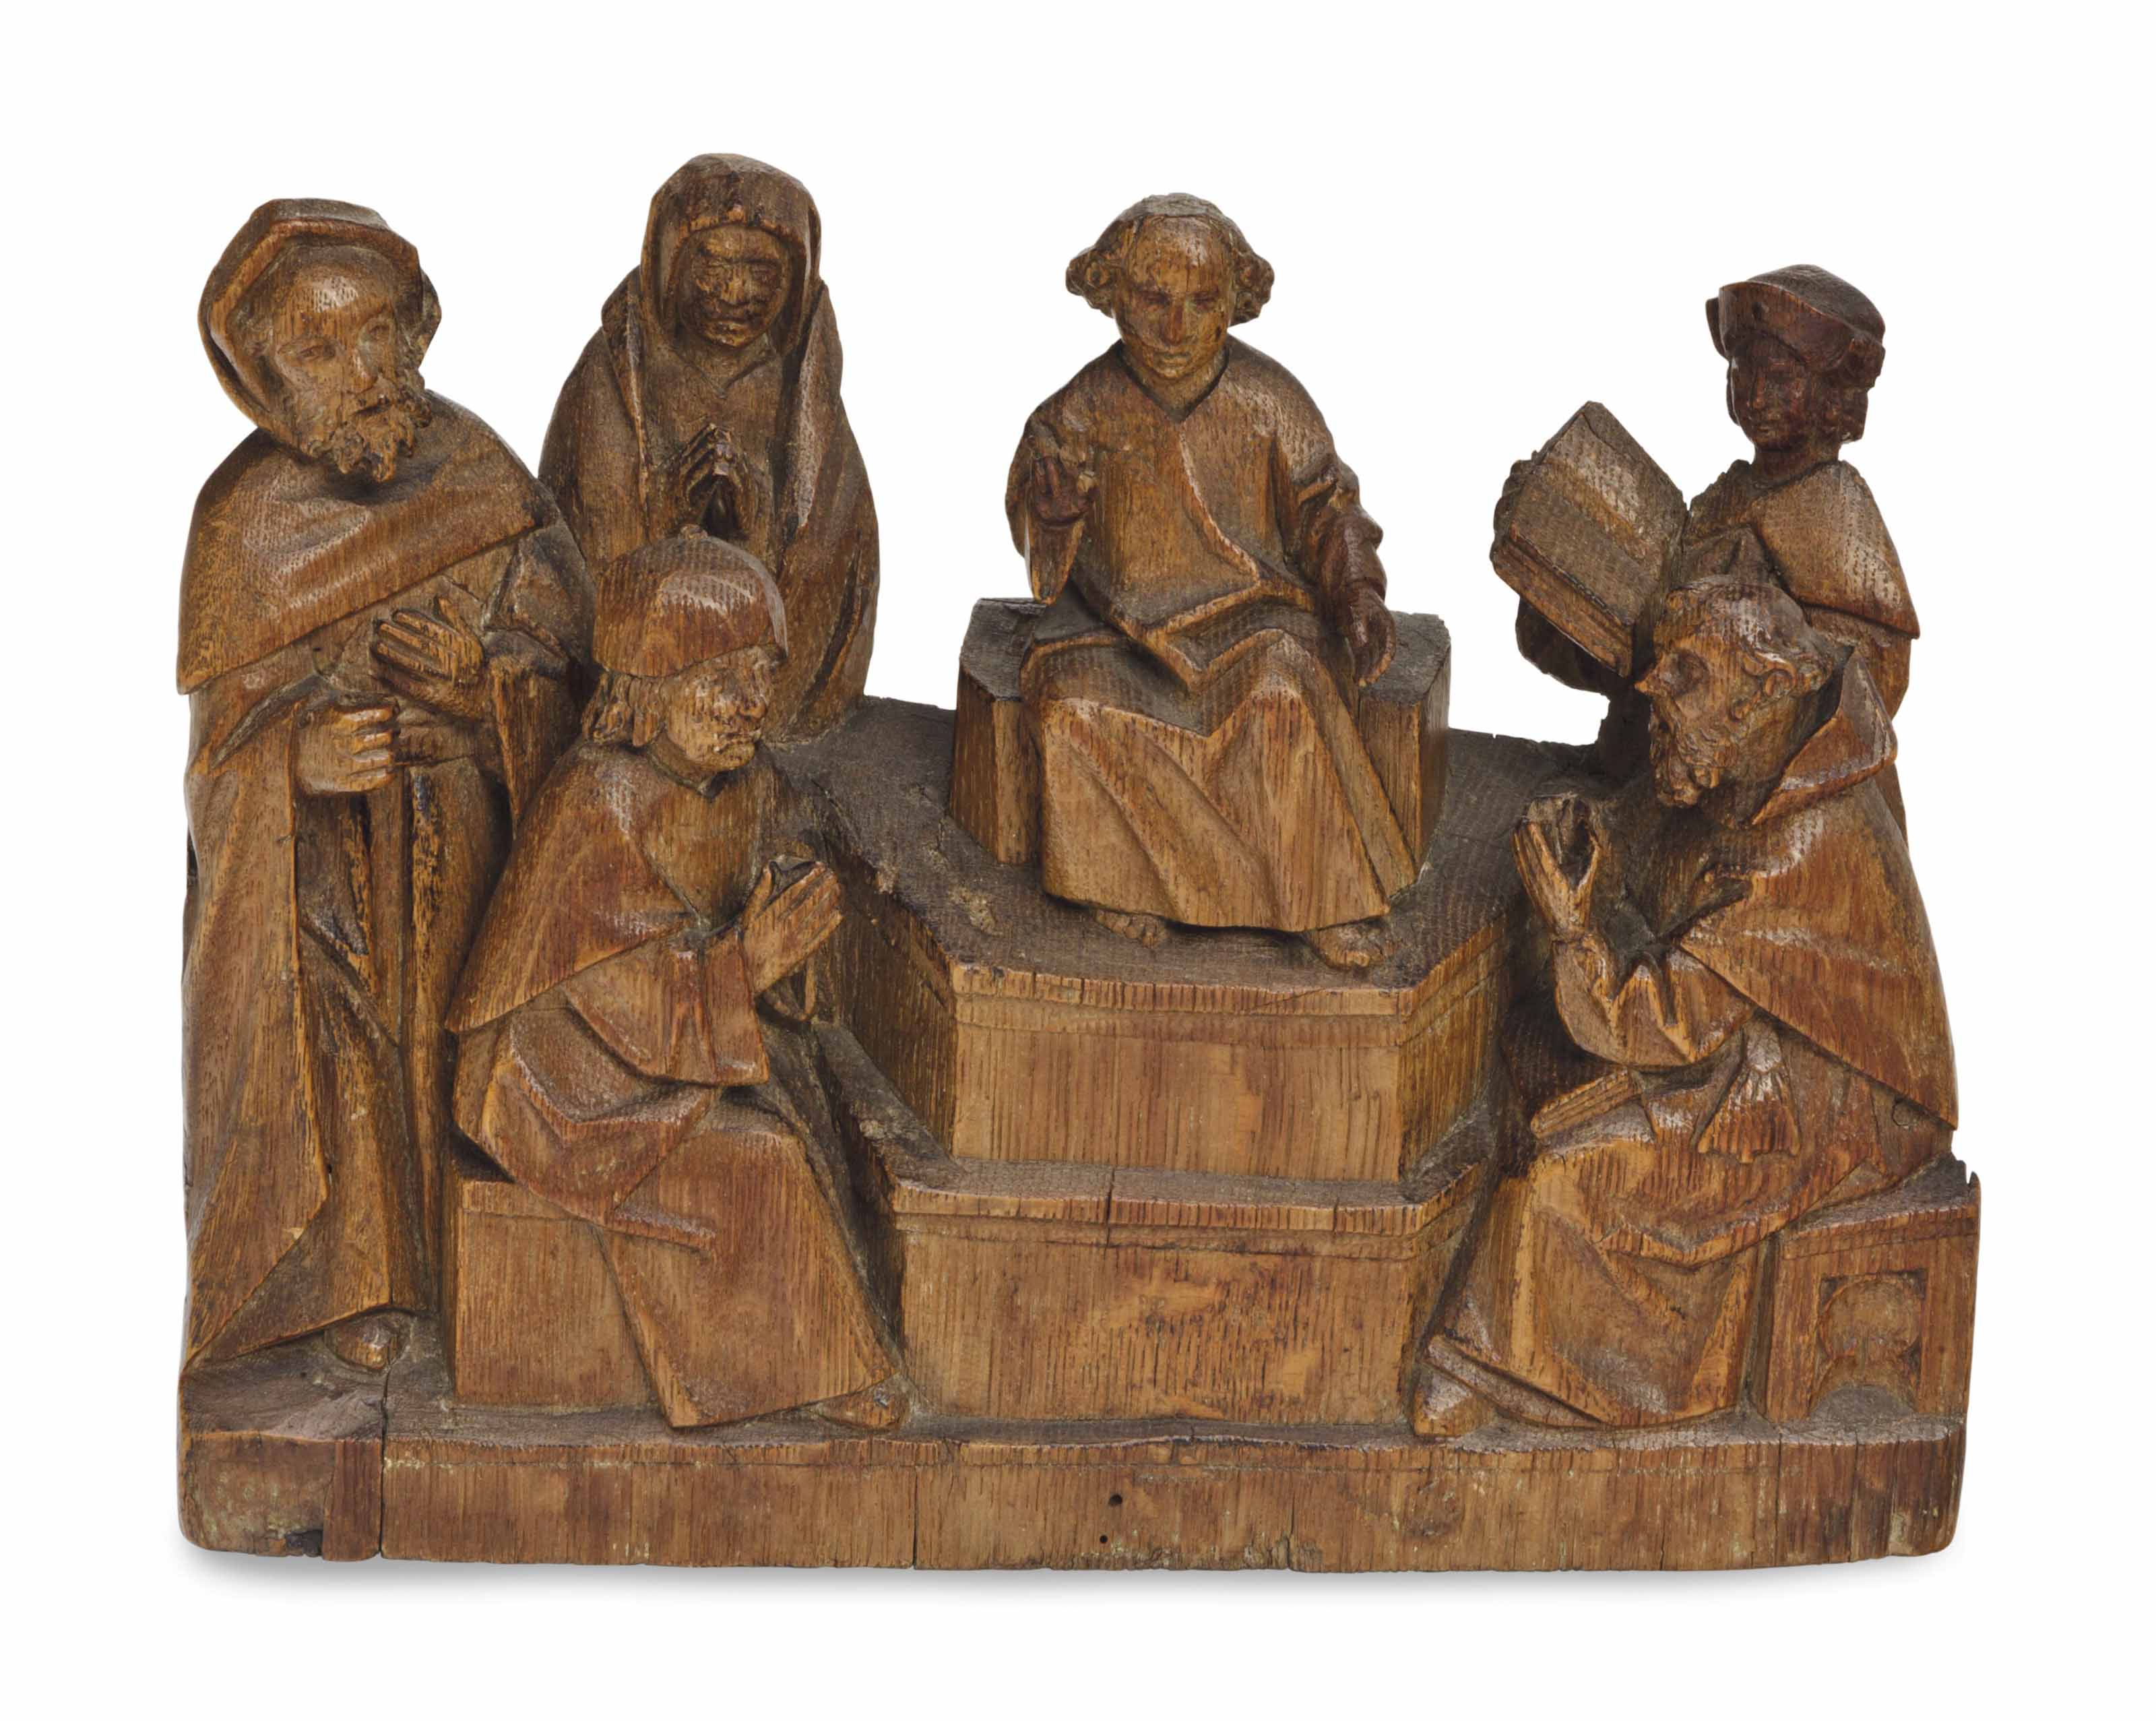 A FLEMISH CARVED OAK RELIEF OF